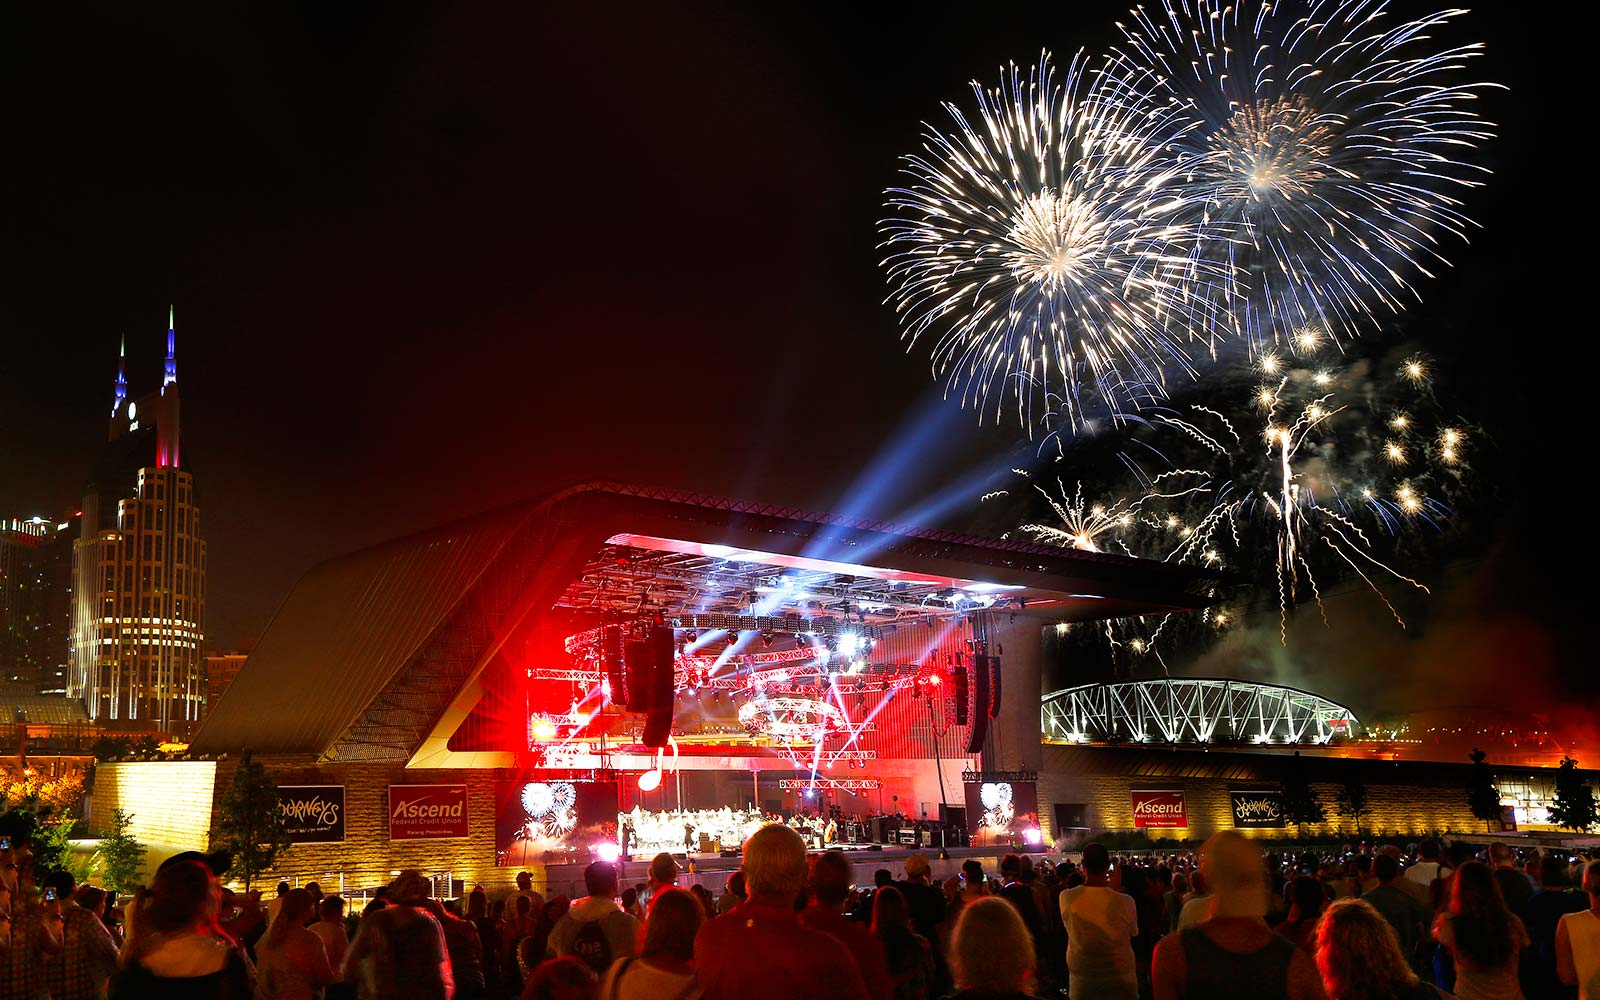 Fourth of July Independence Day Celebrations Holiday Let Freedom Sing! Music City Nashville Tennessee